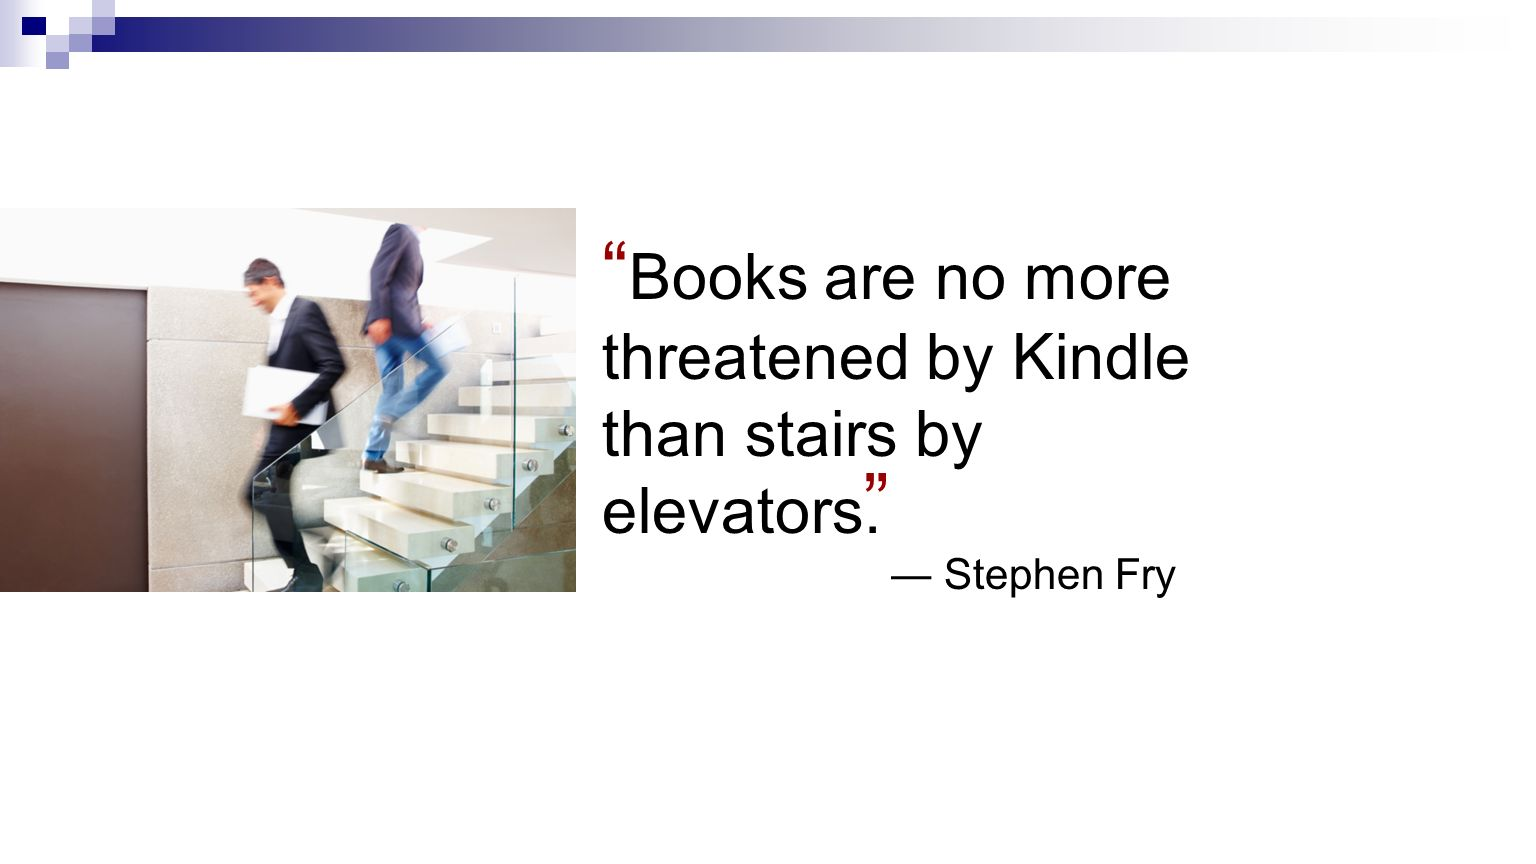 Books are no more threatened by Kindle than stairs by elevators. Stephen Fry